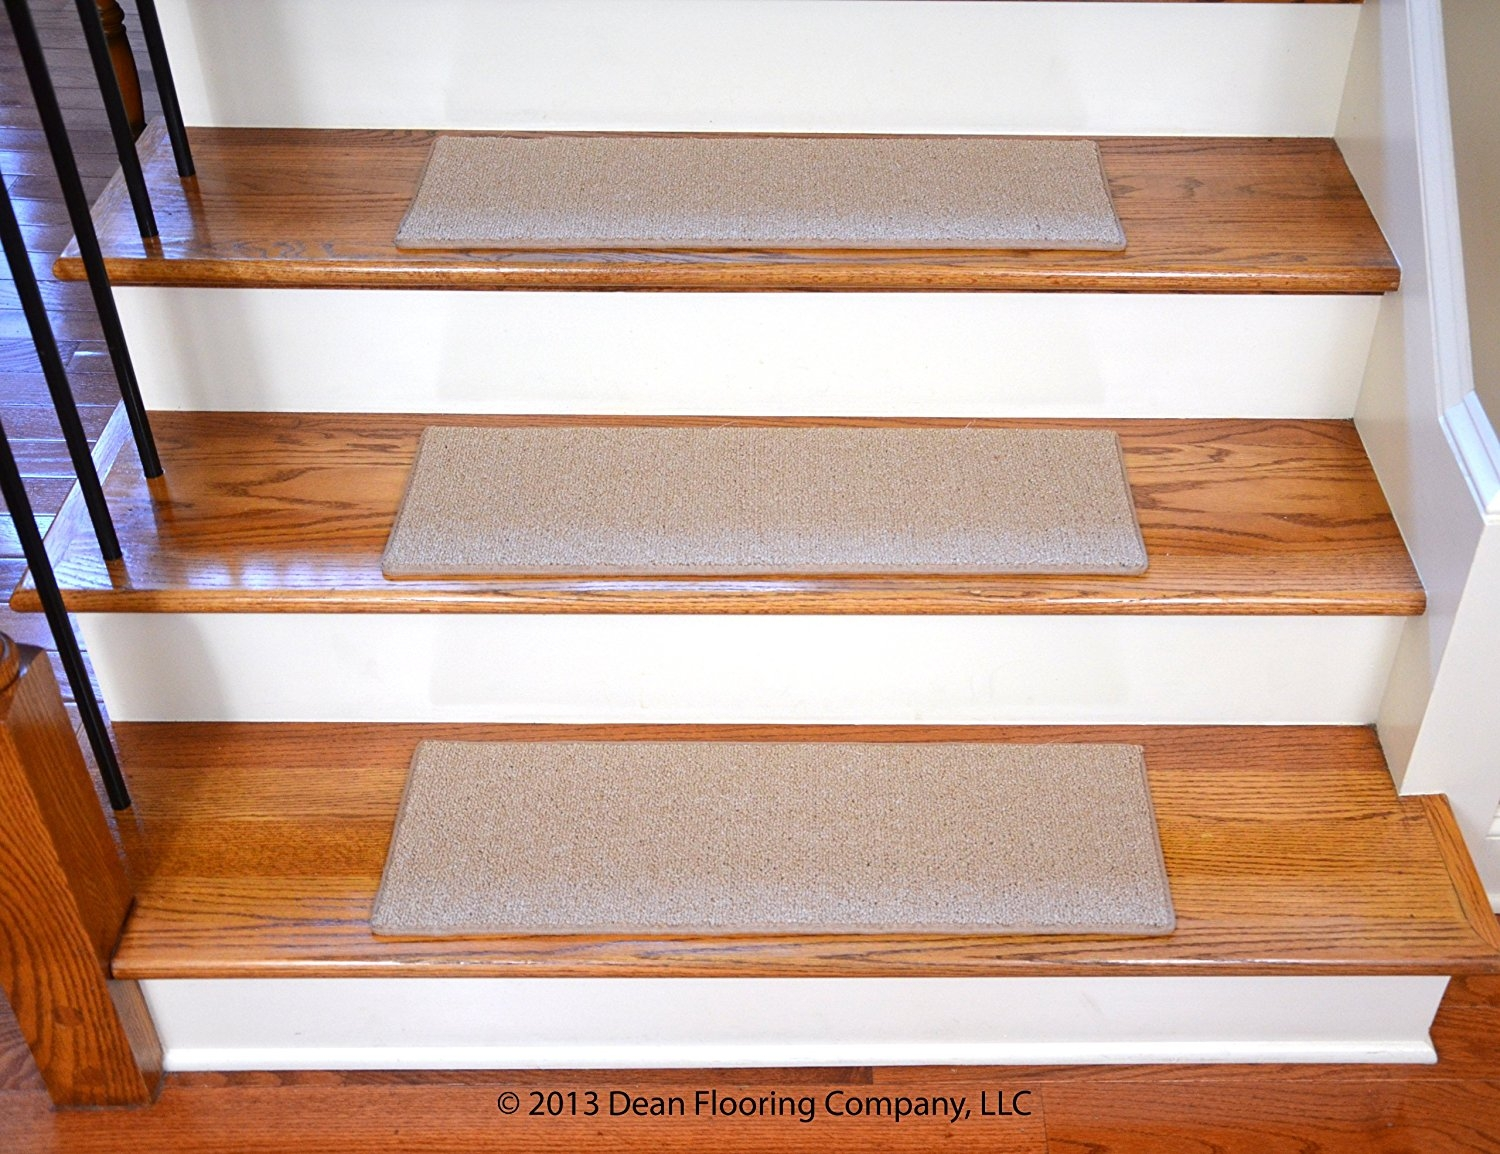 Dean Non Slip Tape Free Pet Friendly Diy Carpet Stair Treadsrugs Pertaining To Stair Tread Rugs For Dogs (View 16 of 20)